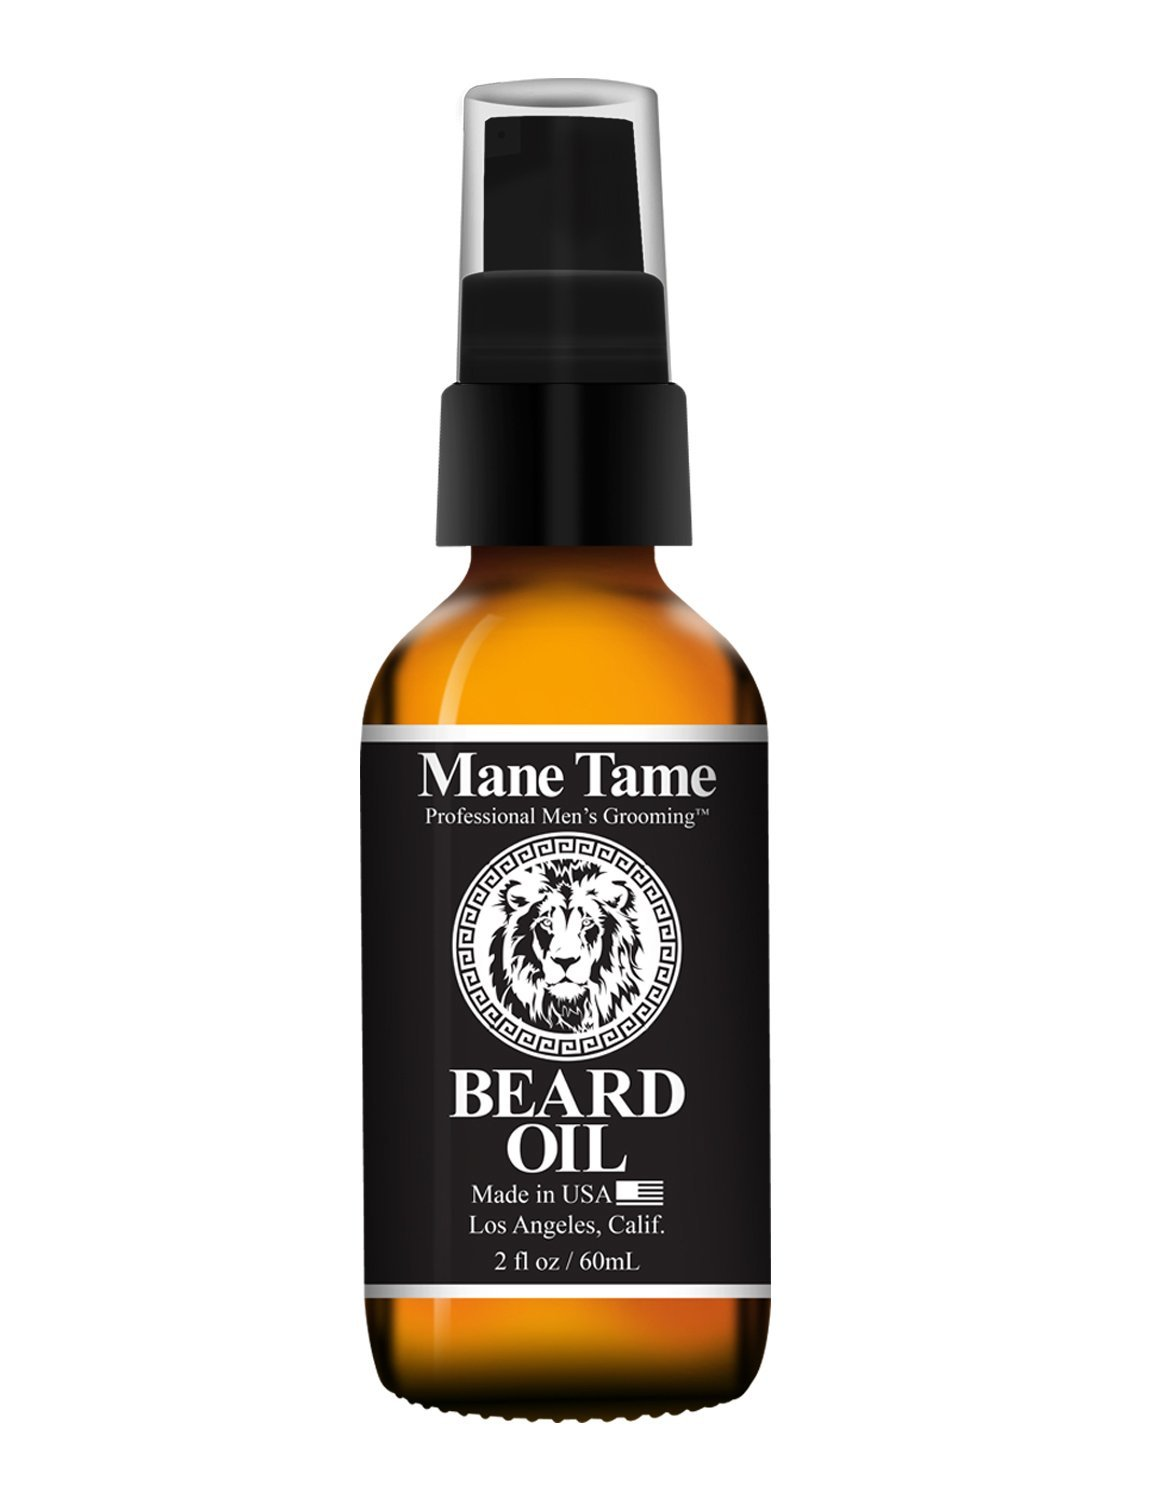 Mane Tame Beard Oil - Made with Certified Organic Hemp Oil - No Fuss Pump 2oz Bottle - Softens Your Beard and Stops Itching - Great Beard Oil and Conditioner For Men